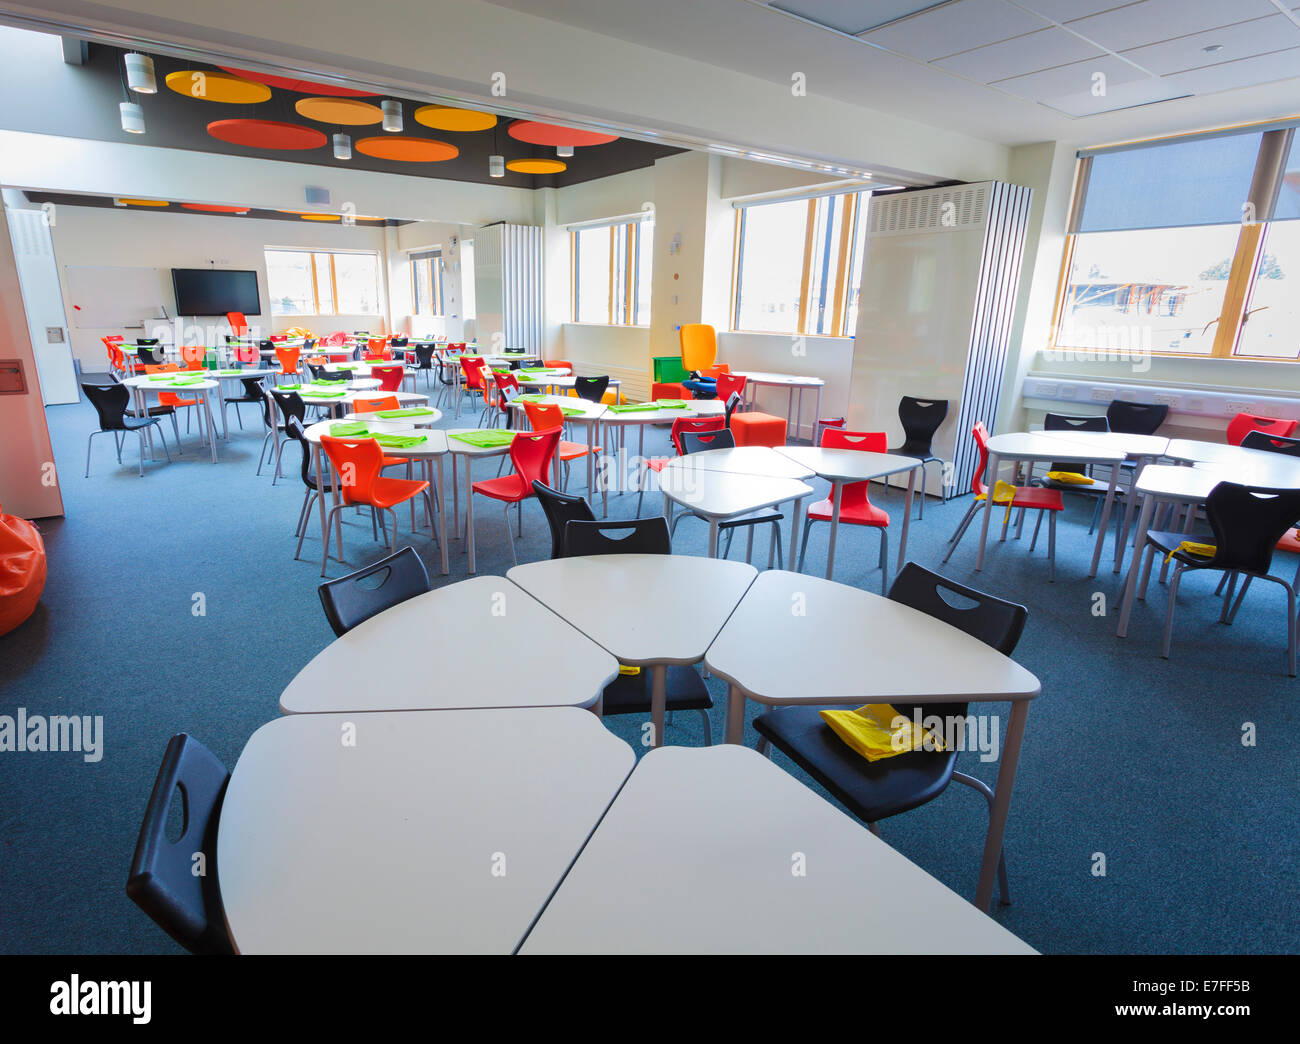 The Modern Classroom ~ Unoccupied modern school classroom with desks in a circle